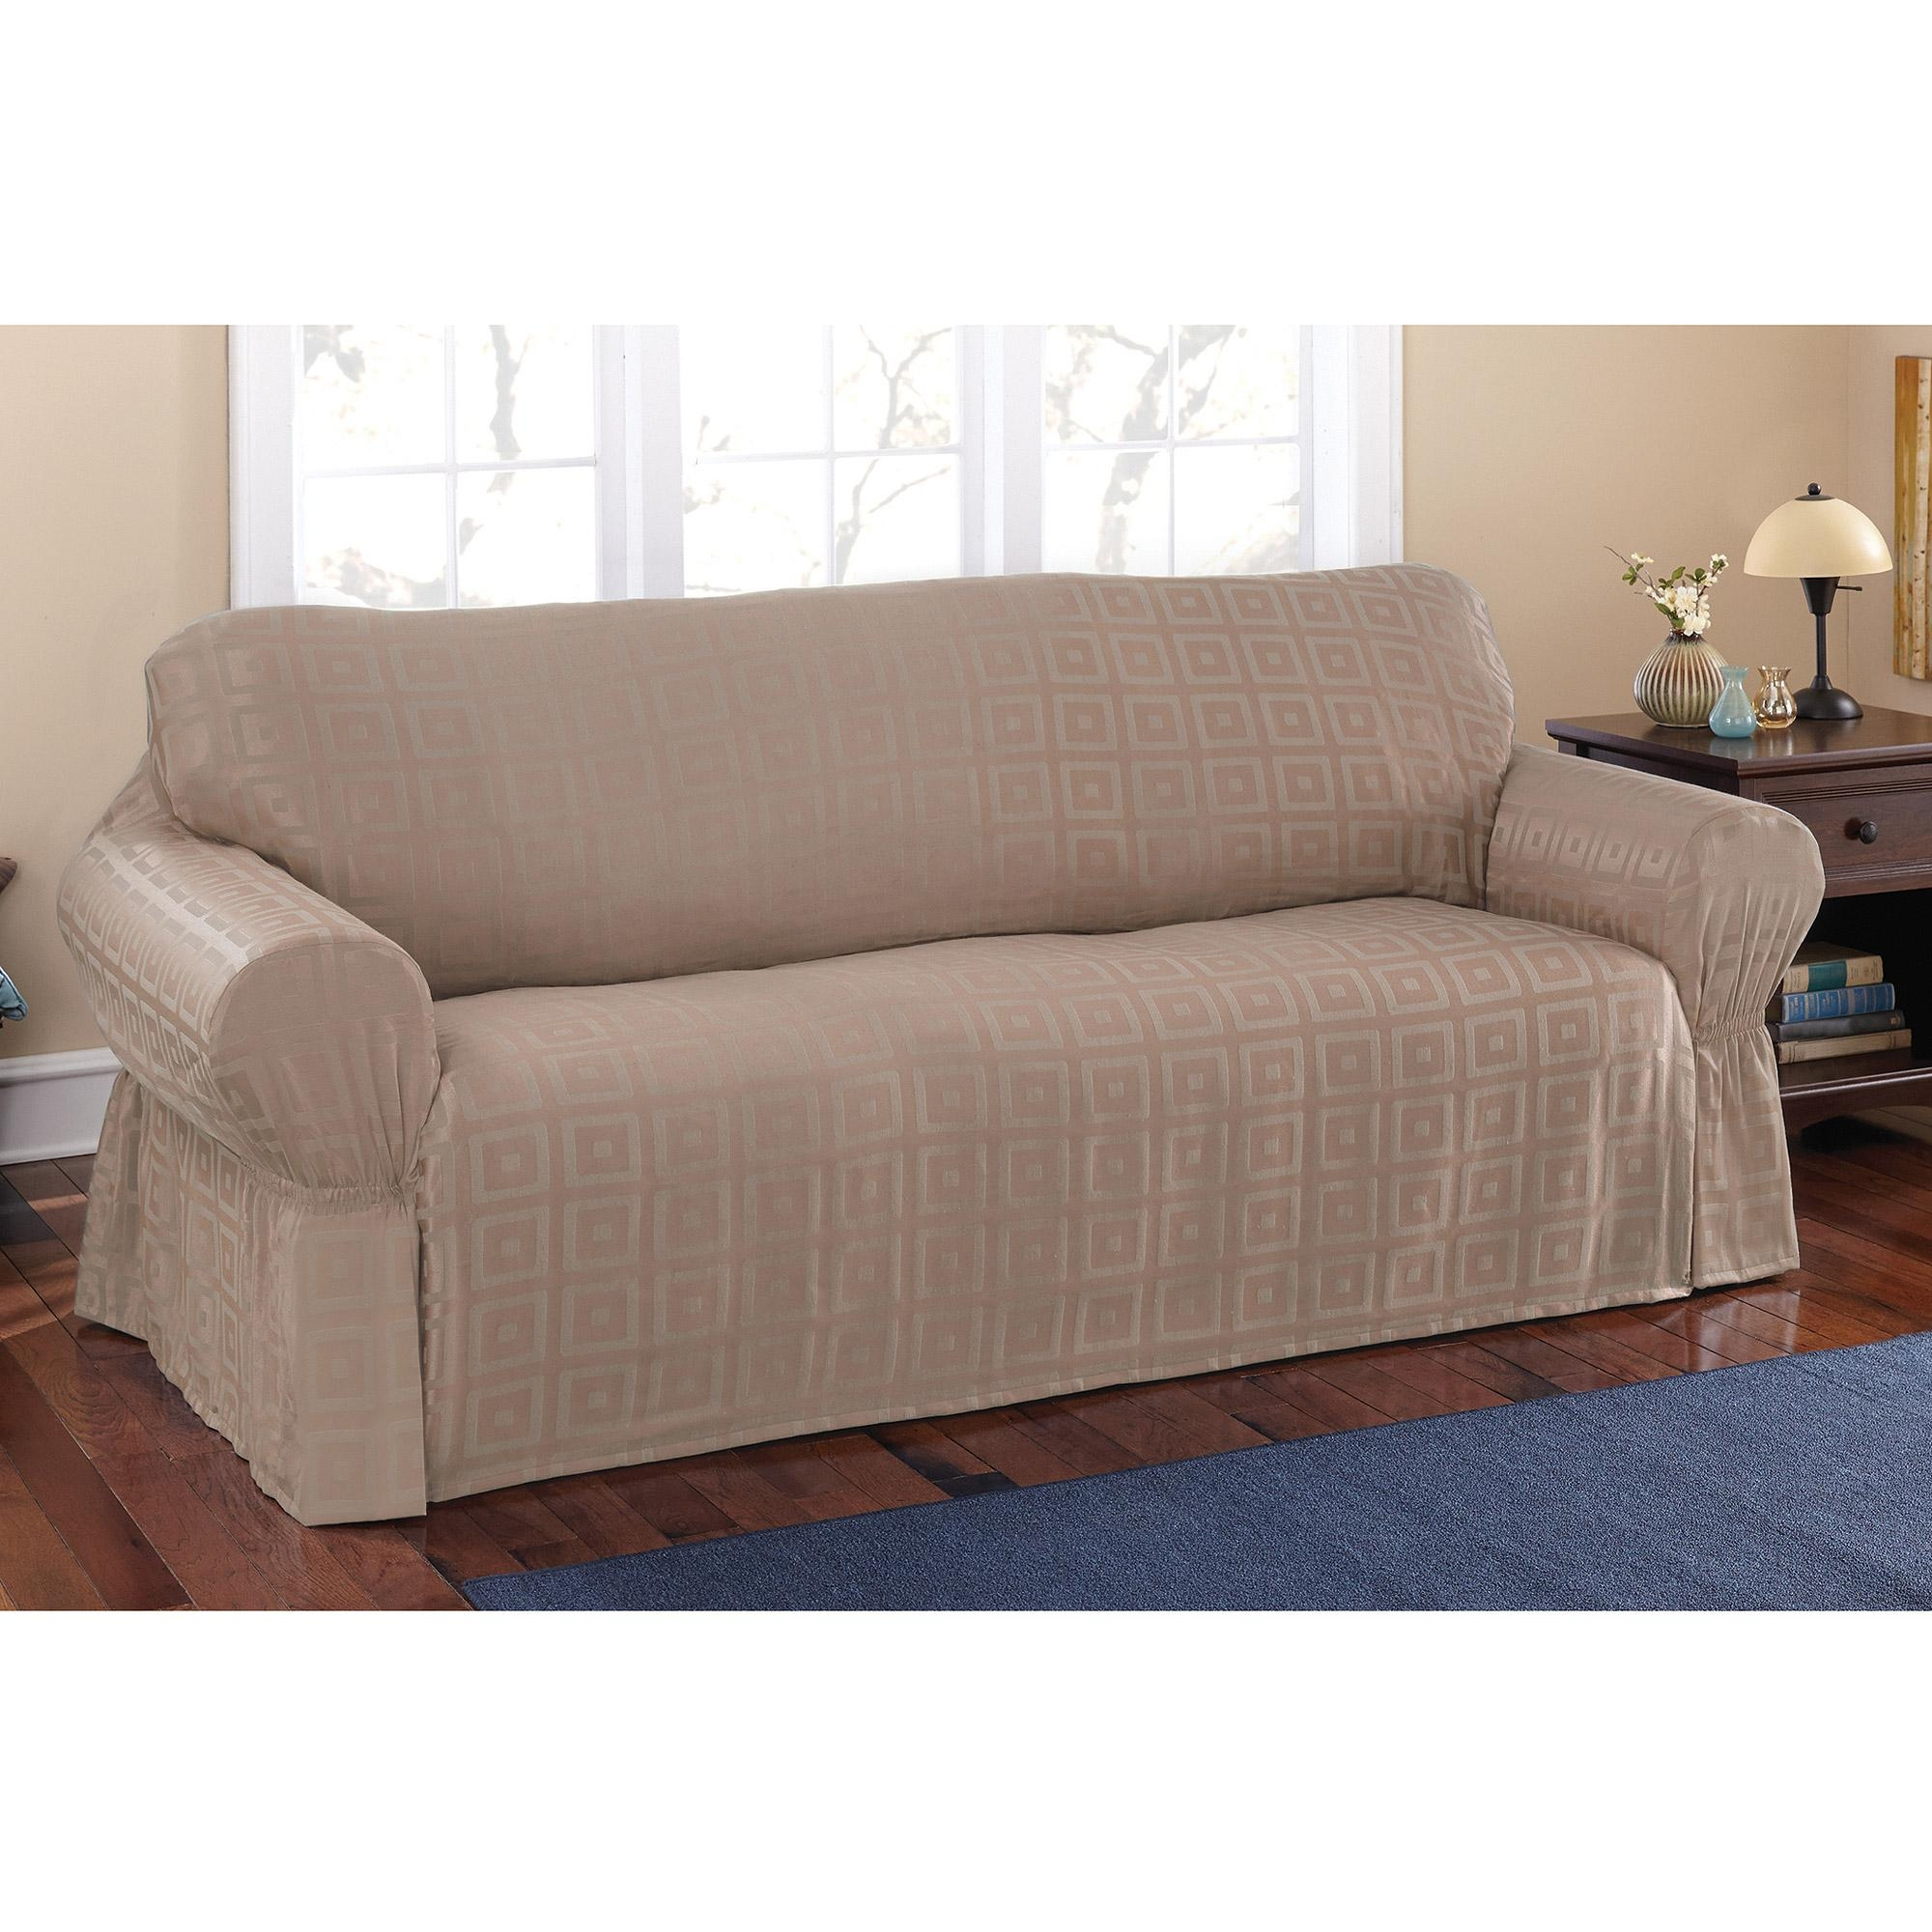 Mainstays Sherwood Slipcover Sofa – Walmart In Wallmart Sofa (View 10 of 20)